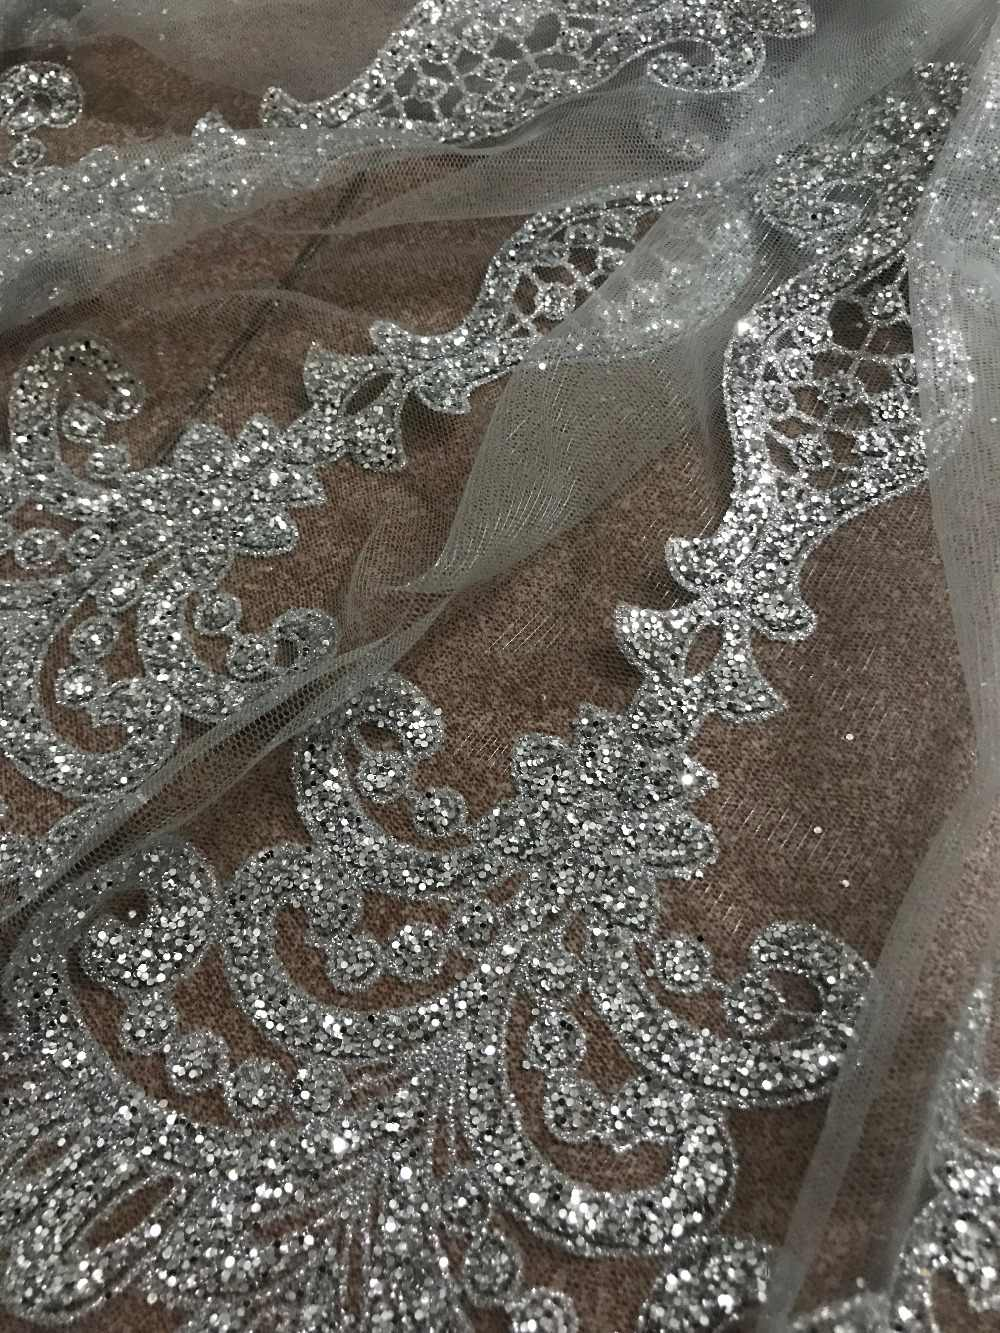 ... 10y glued glitter lace fabric on sale sat-91610 glitter mesh material  for evening dress ... 047fd477ee8f